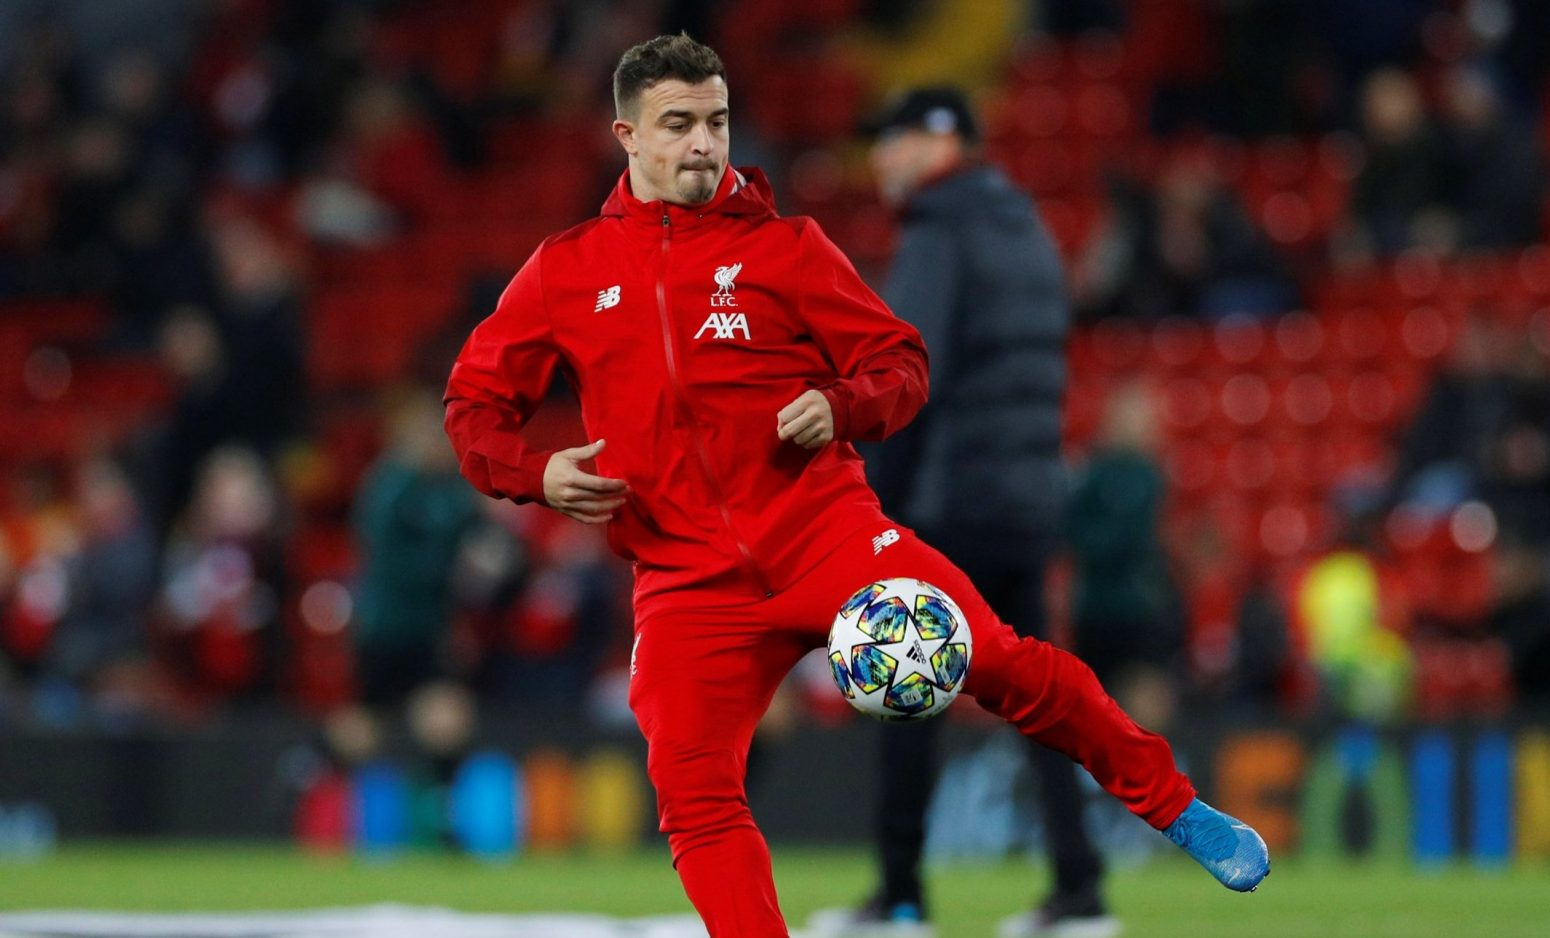 Xherdan Shaqiri to leave Liverpool this summer as Italian clubs circle for his signature